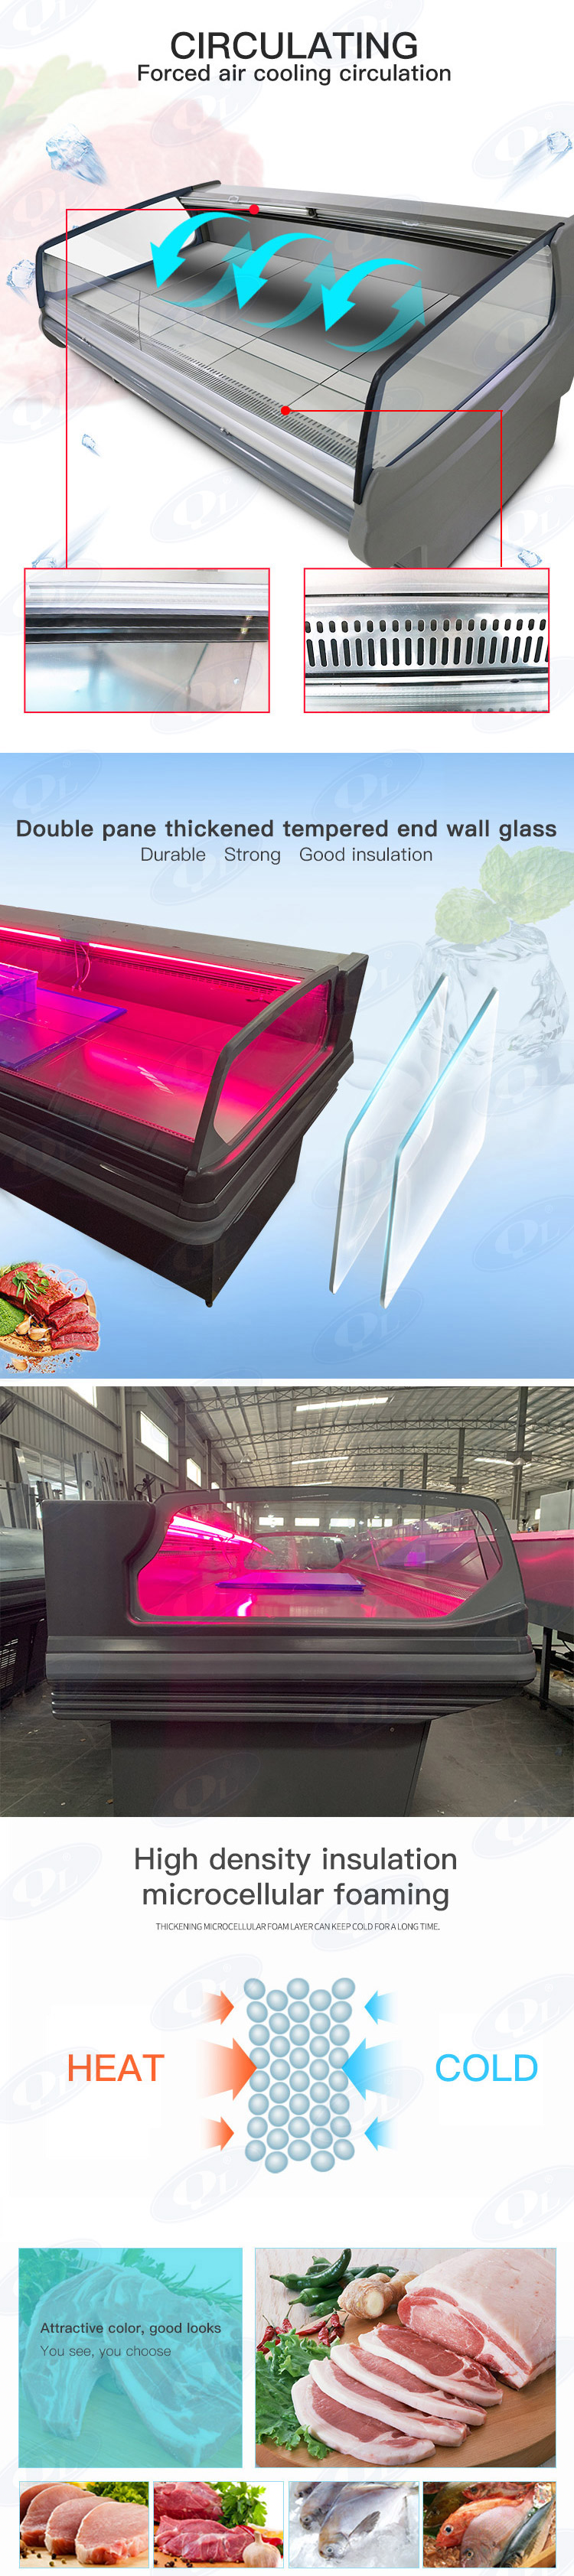 Energy saving meat refrigeration commercial display fridges